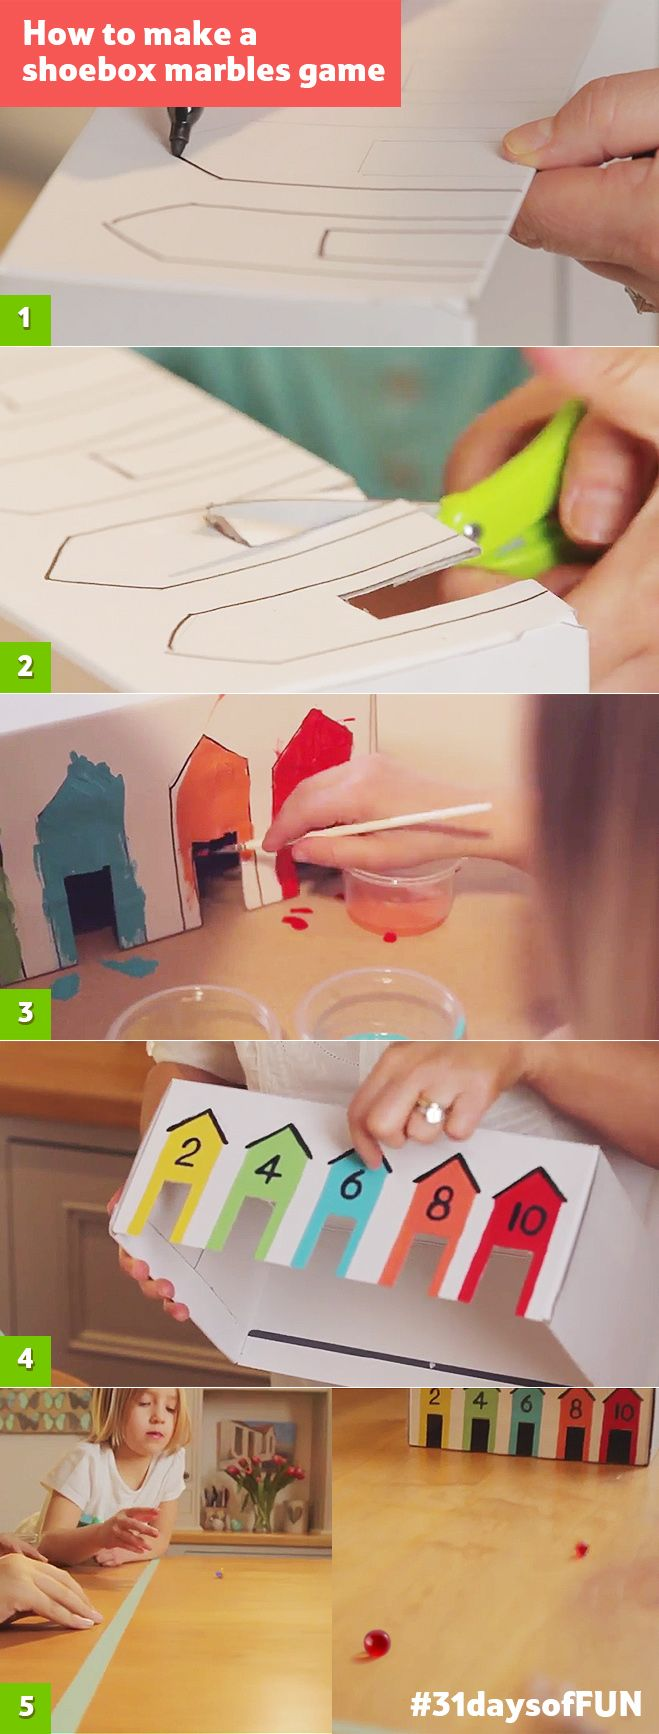 Day 30: Use an old shoebox and some poster paints to make a marbles game for kids. Have a family tournament! #31daysofFUN